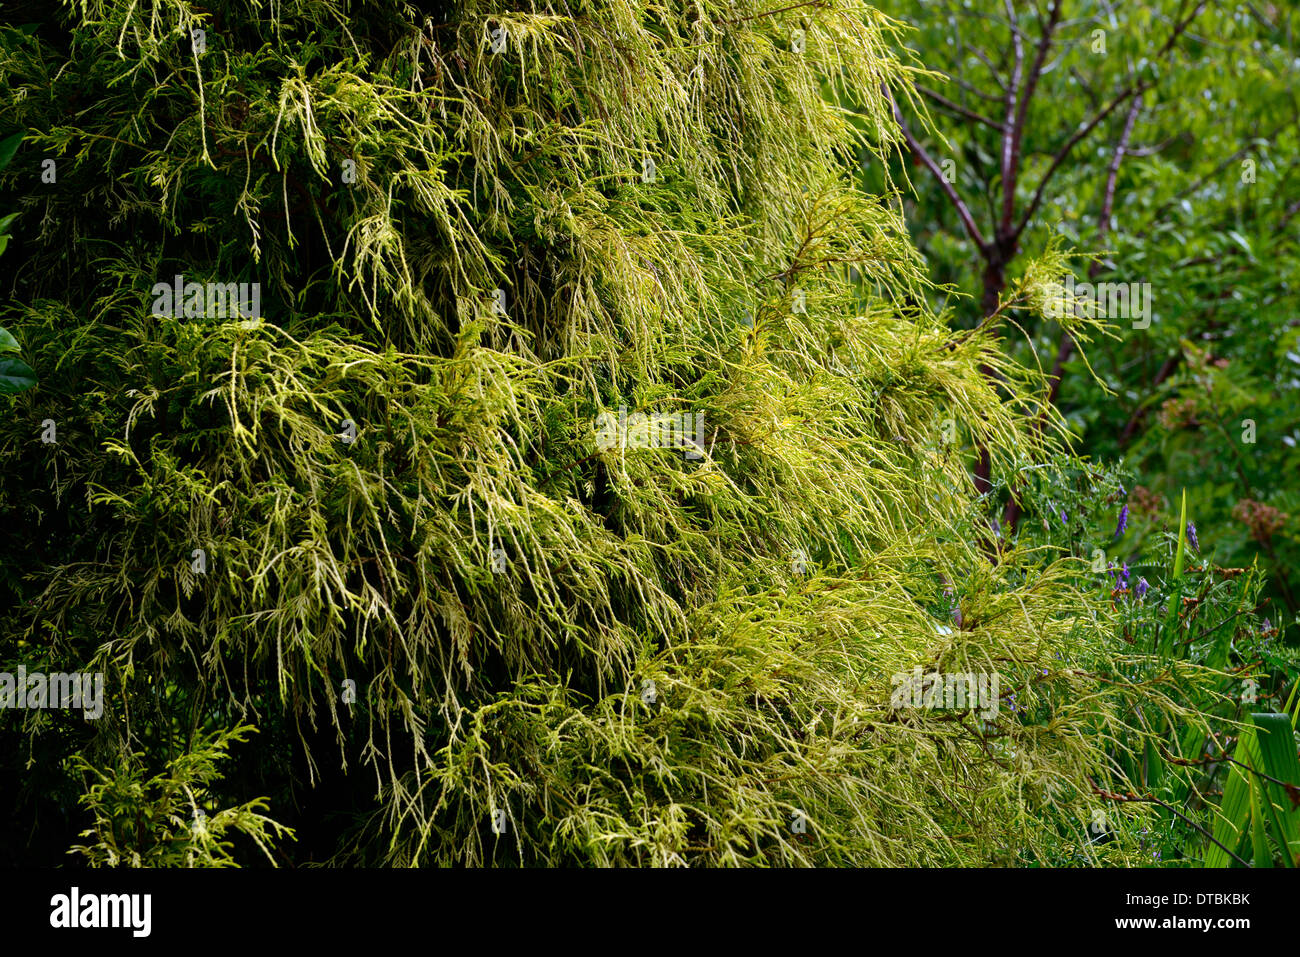 chamaecyparis pisifera filifera aurea nana evergreen conifer conifers evergreens foliage leaves mound appearance - Stock Image